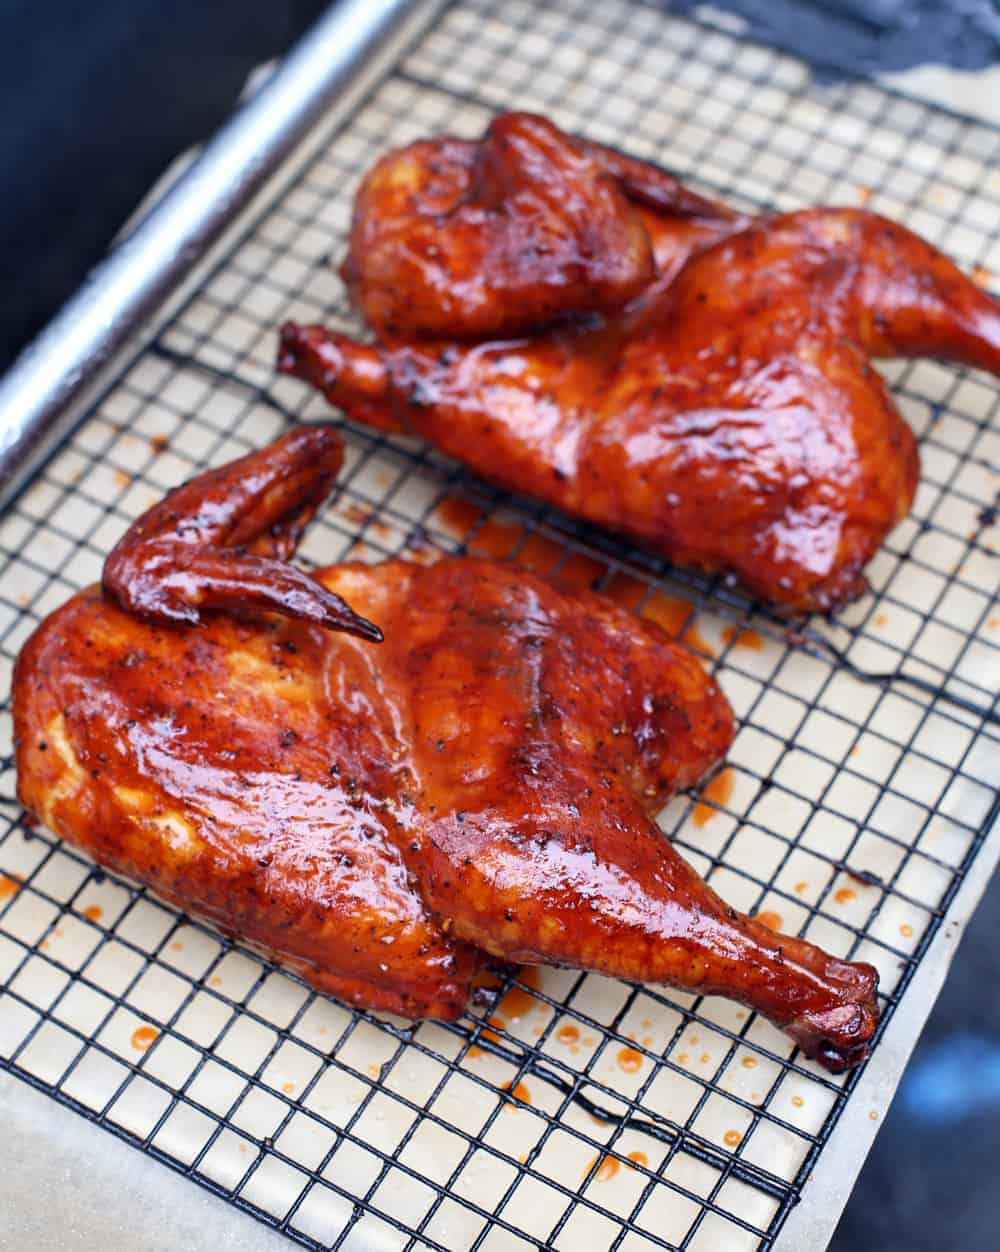 Dry Brined Smoked Chicken with a Carolina BBQ Glazed on a cooling rack